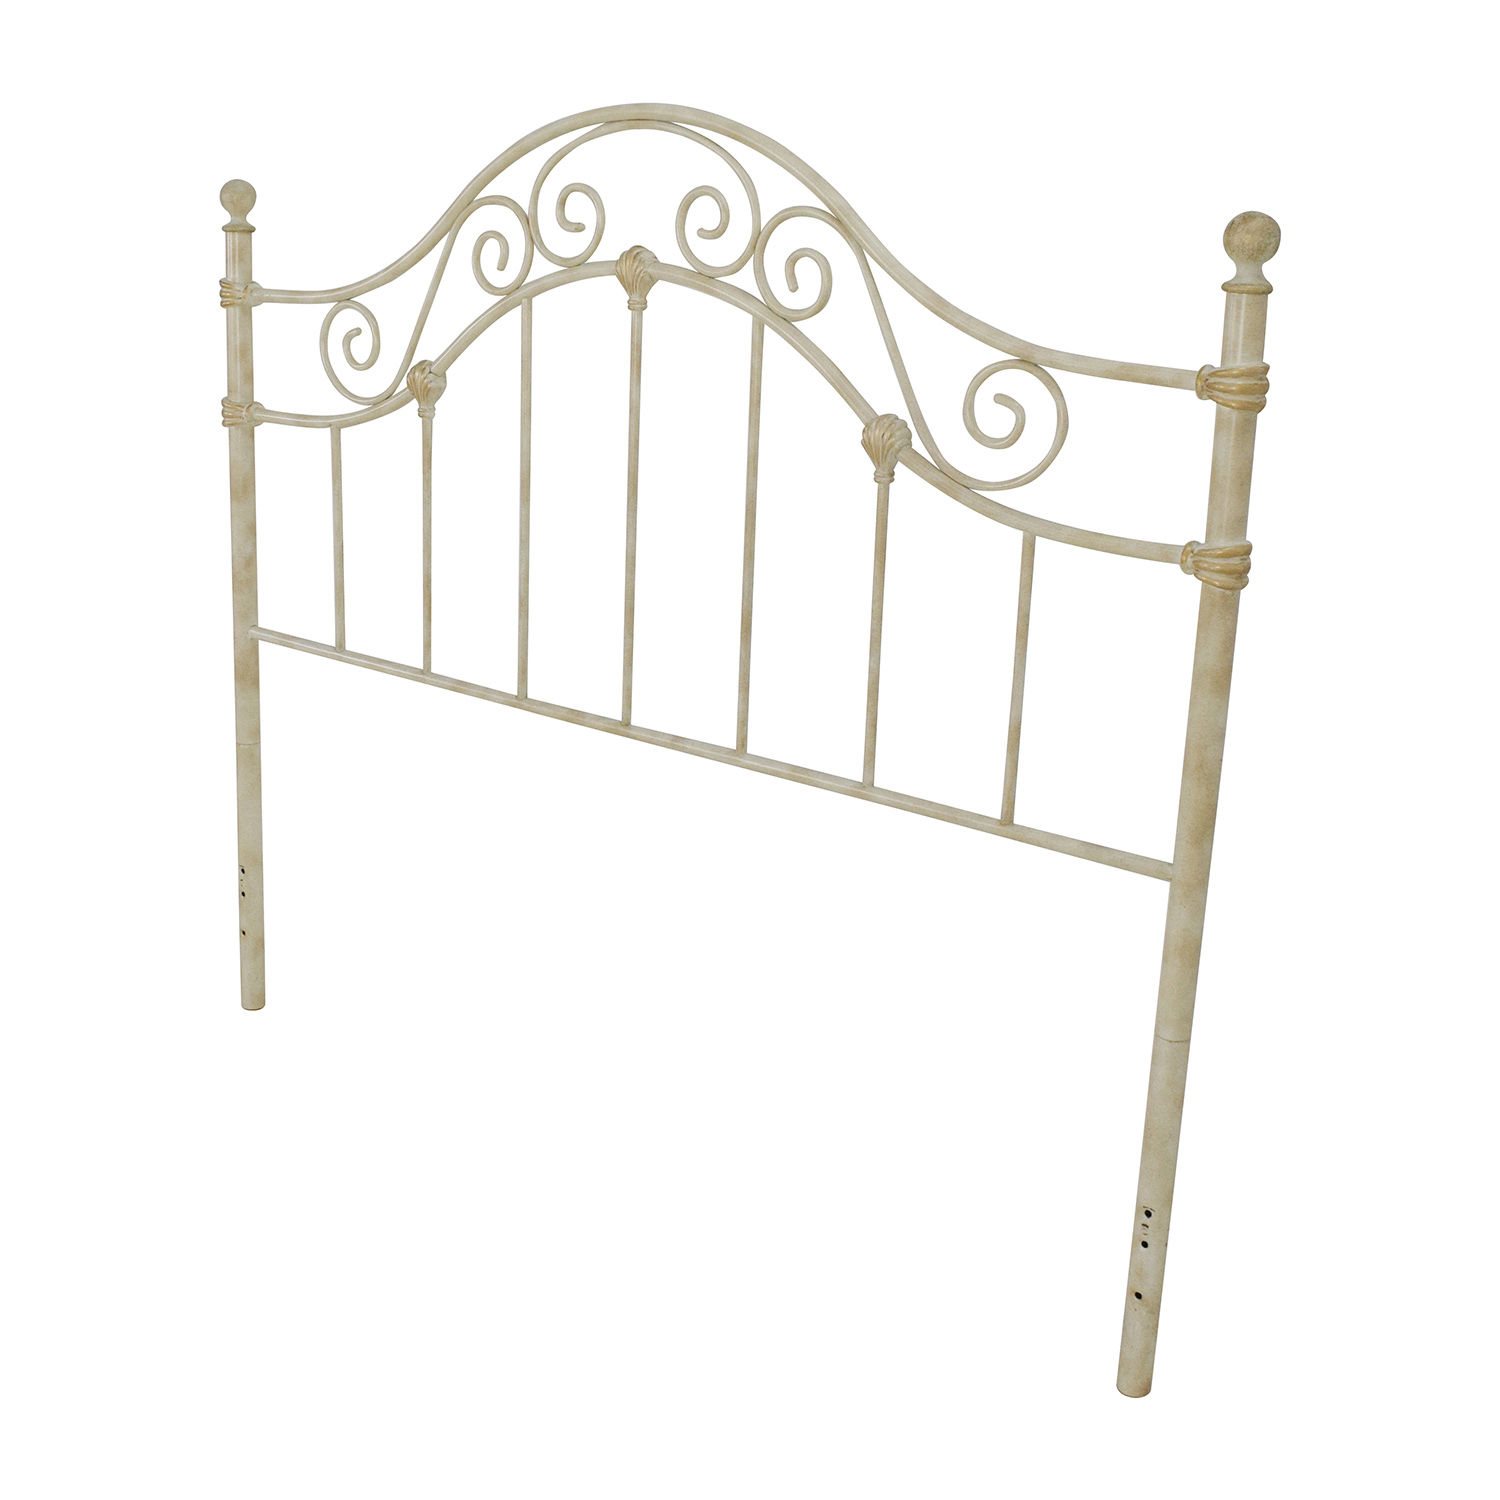 Queen Headboard Dimensions Queen Headboard Dimensions Home Hold Design Reference